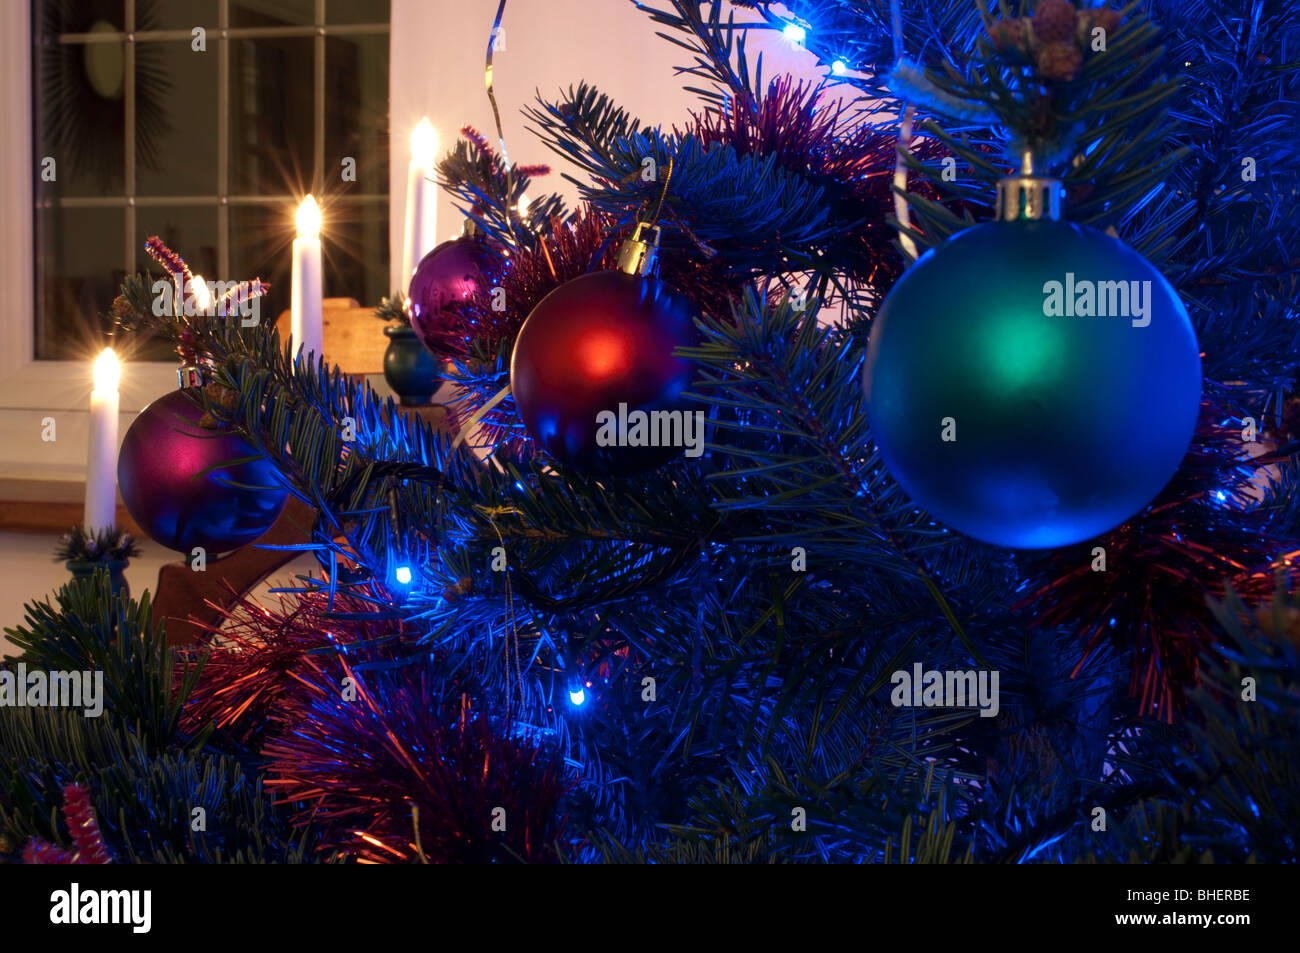 Christmas tree decorations with candles in background - Stock Image